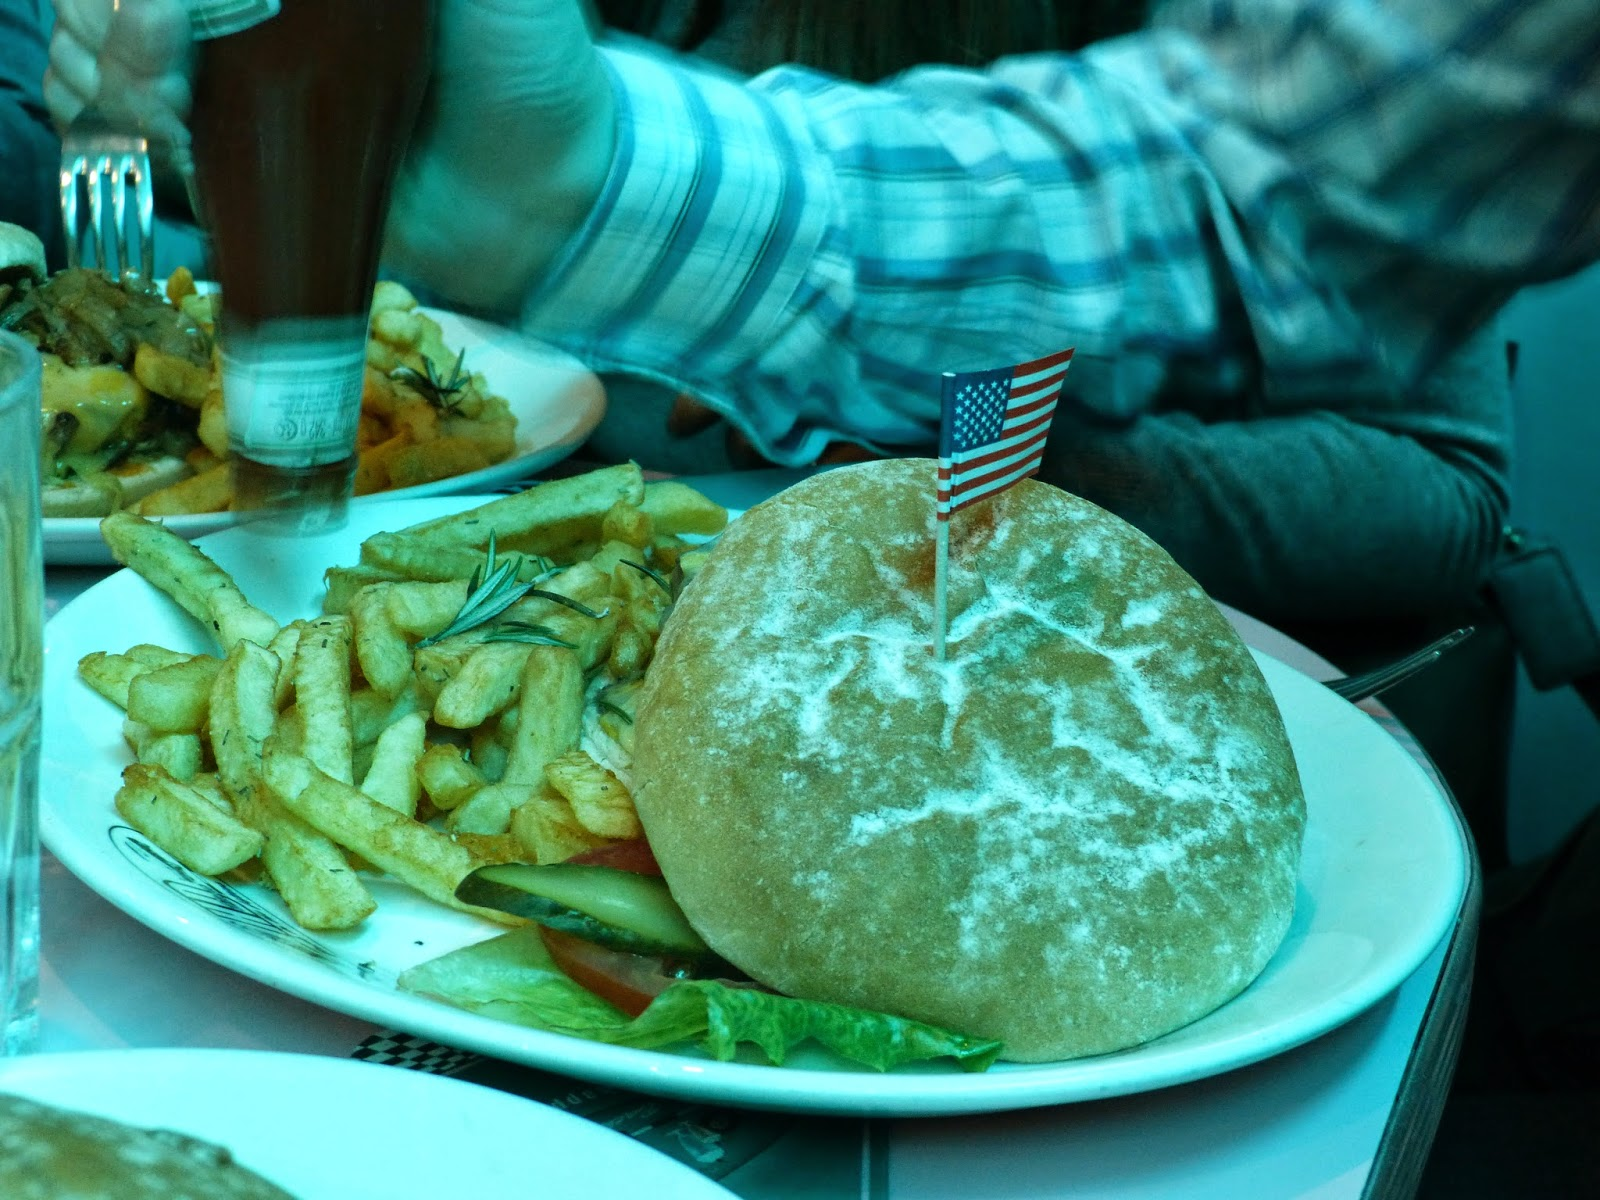 Burger and fries at Happy Days Diner